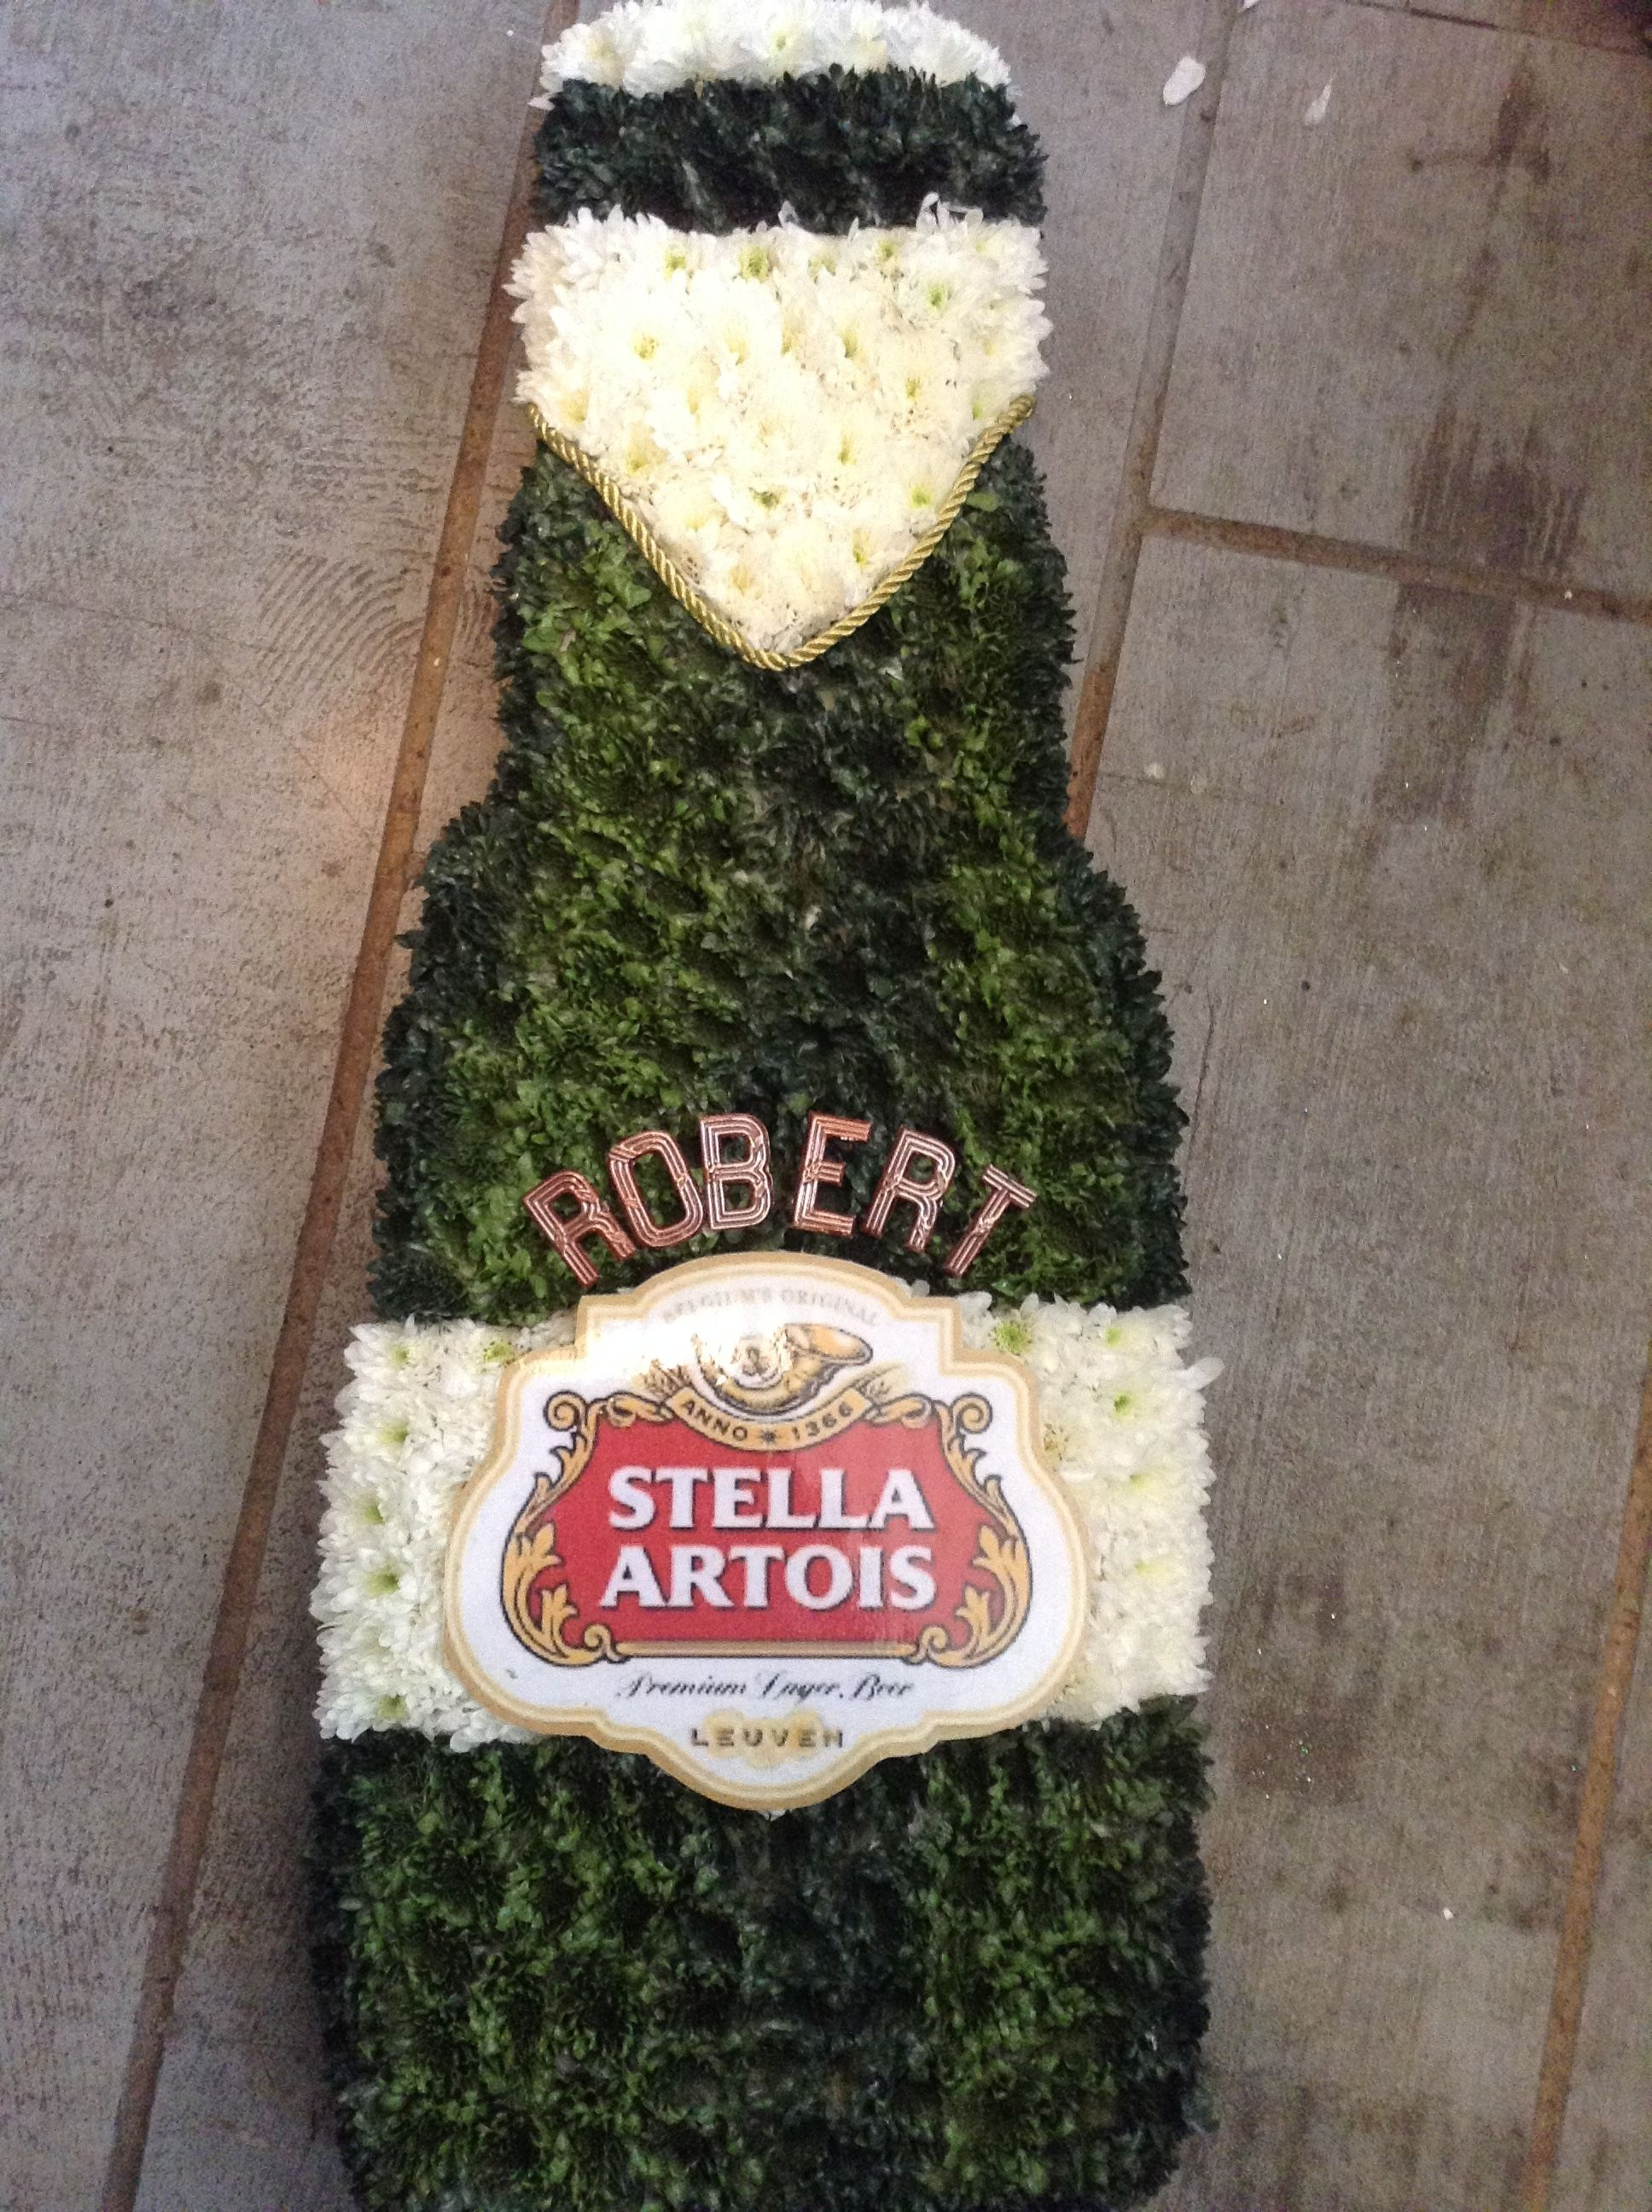 Funeral Flowers Beer Bottle Flower Tribute For A Funeral Www